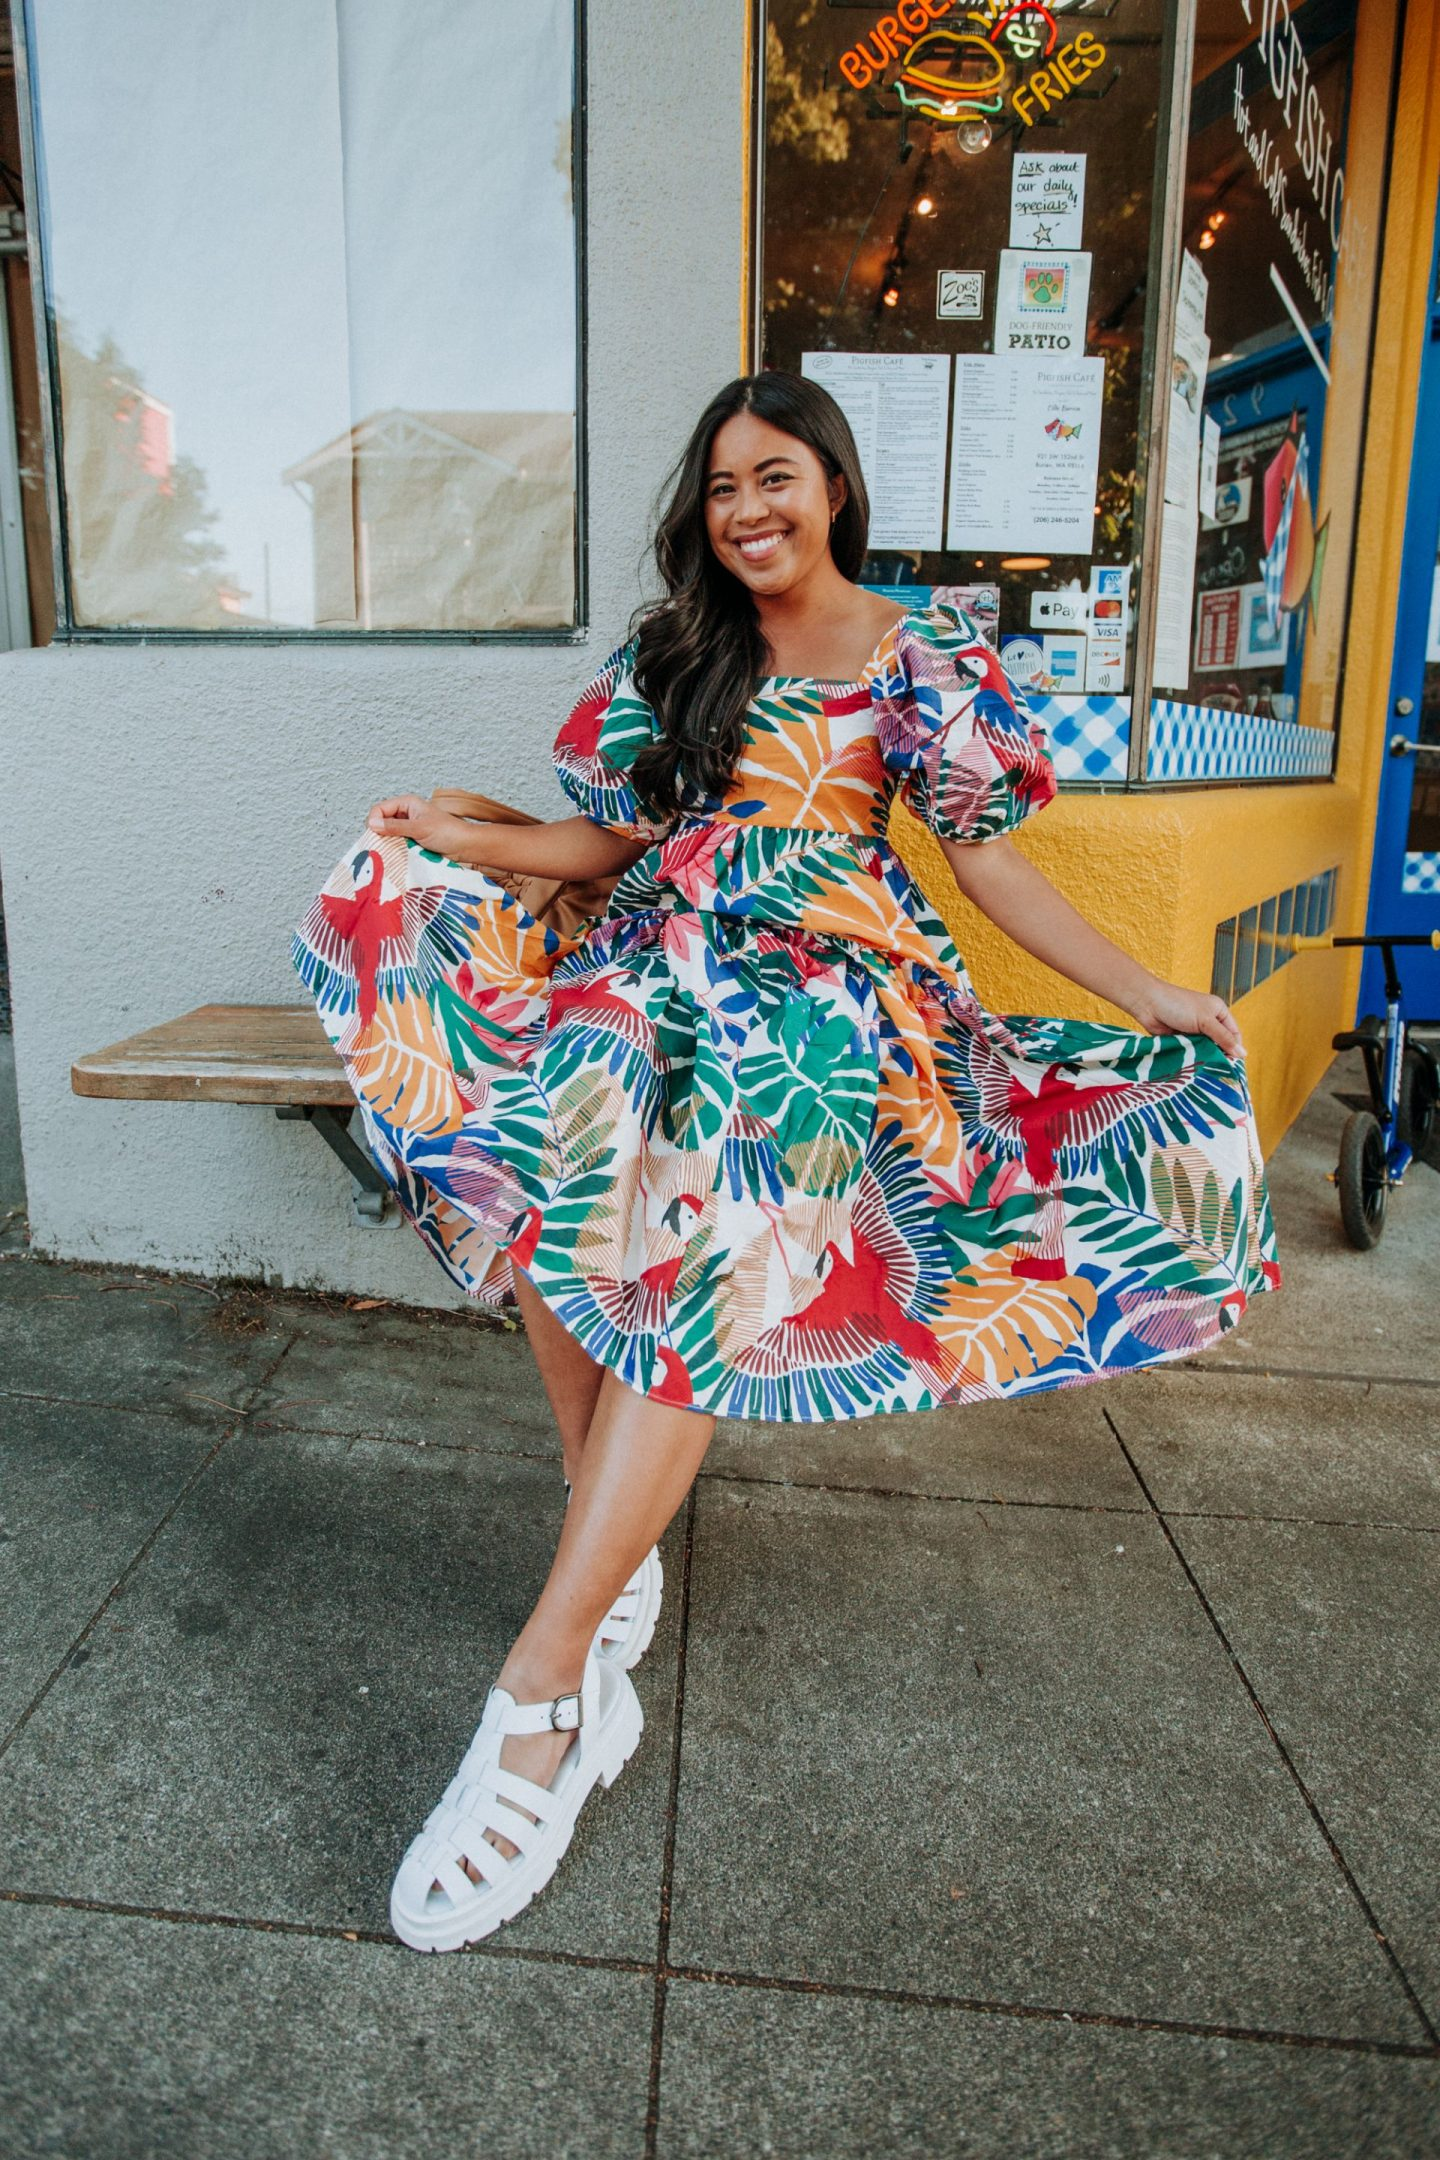 4 Lessons I've Learned in My First Year as a Full-time Content Creator - wearing a Farm Rio summer dress - image from www.emmasedition.com